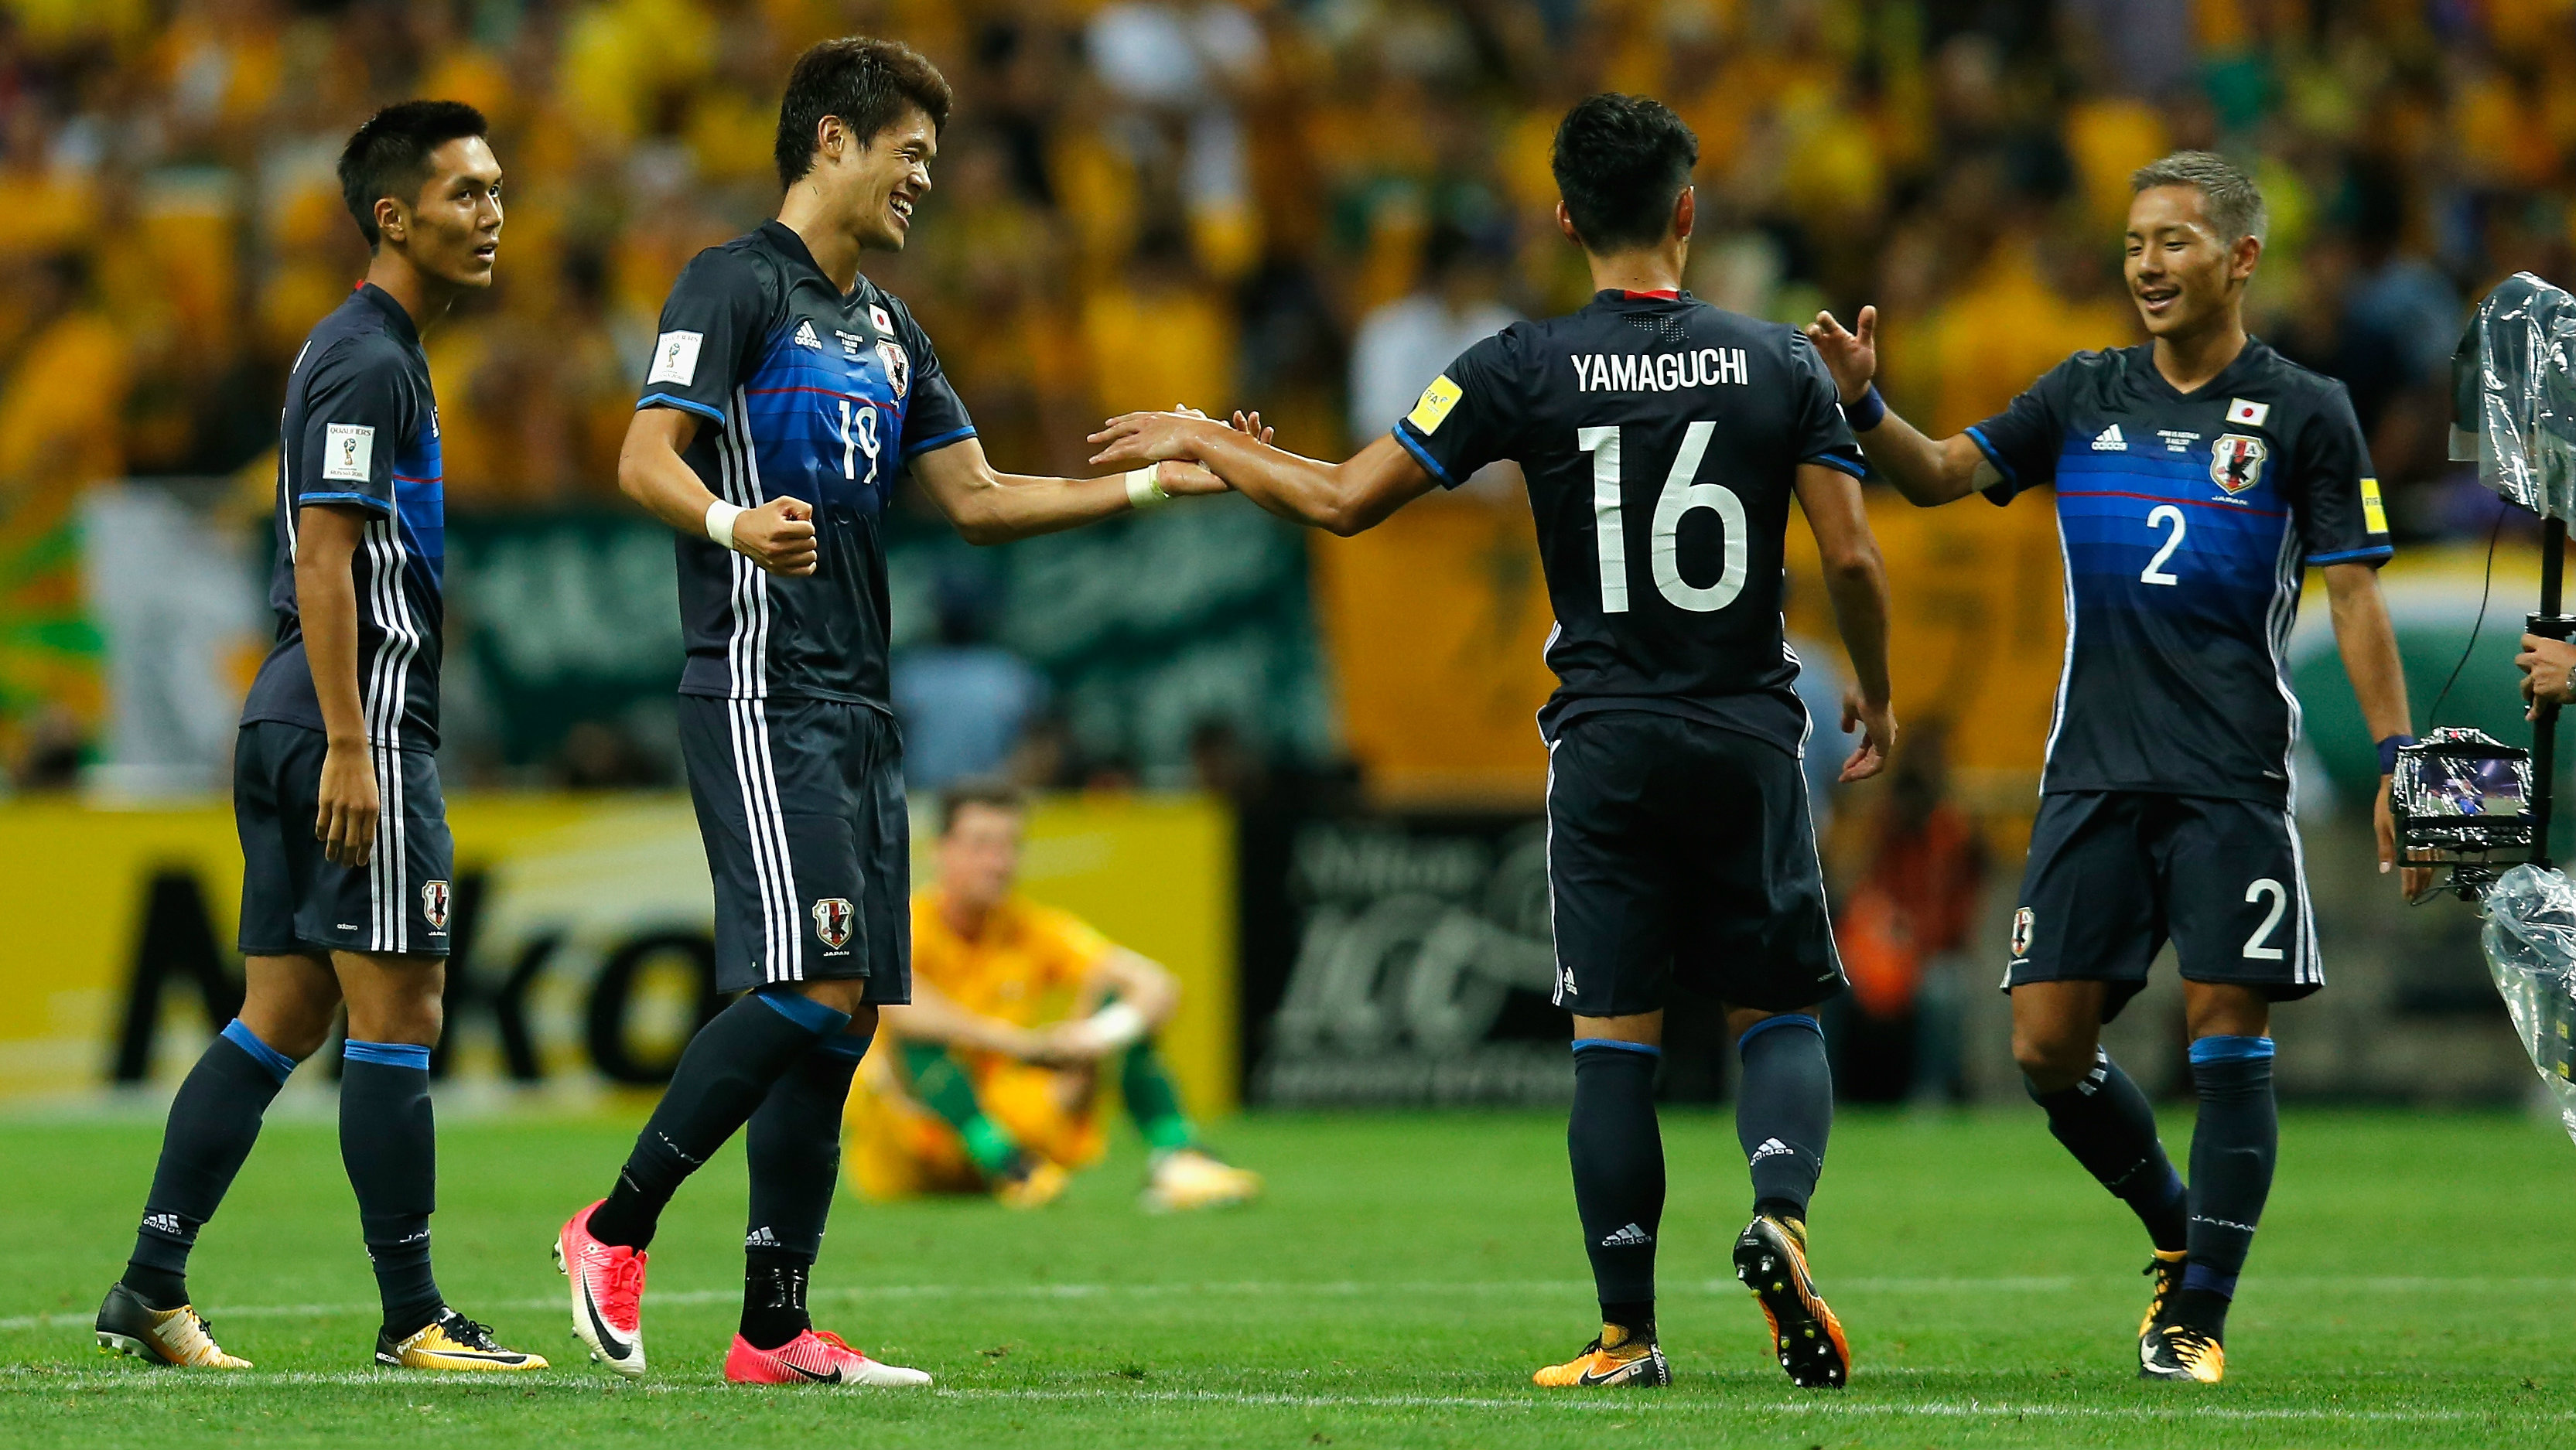 Japanese players celebrate a goal in their 2-0 win over the Caltex Socceroos.